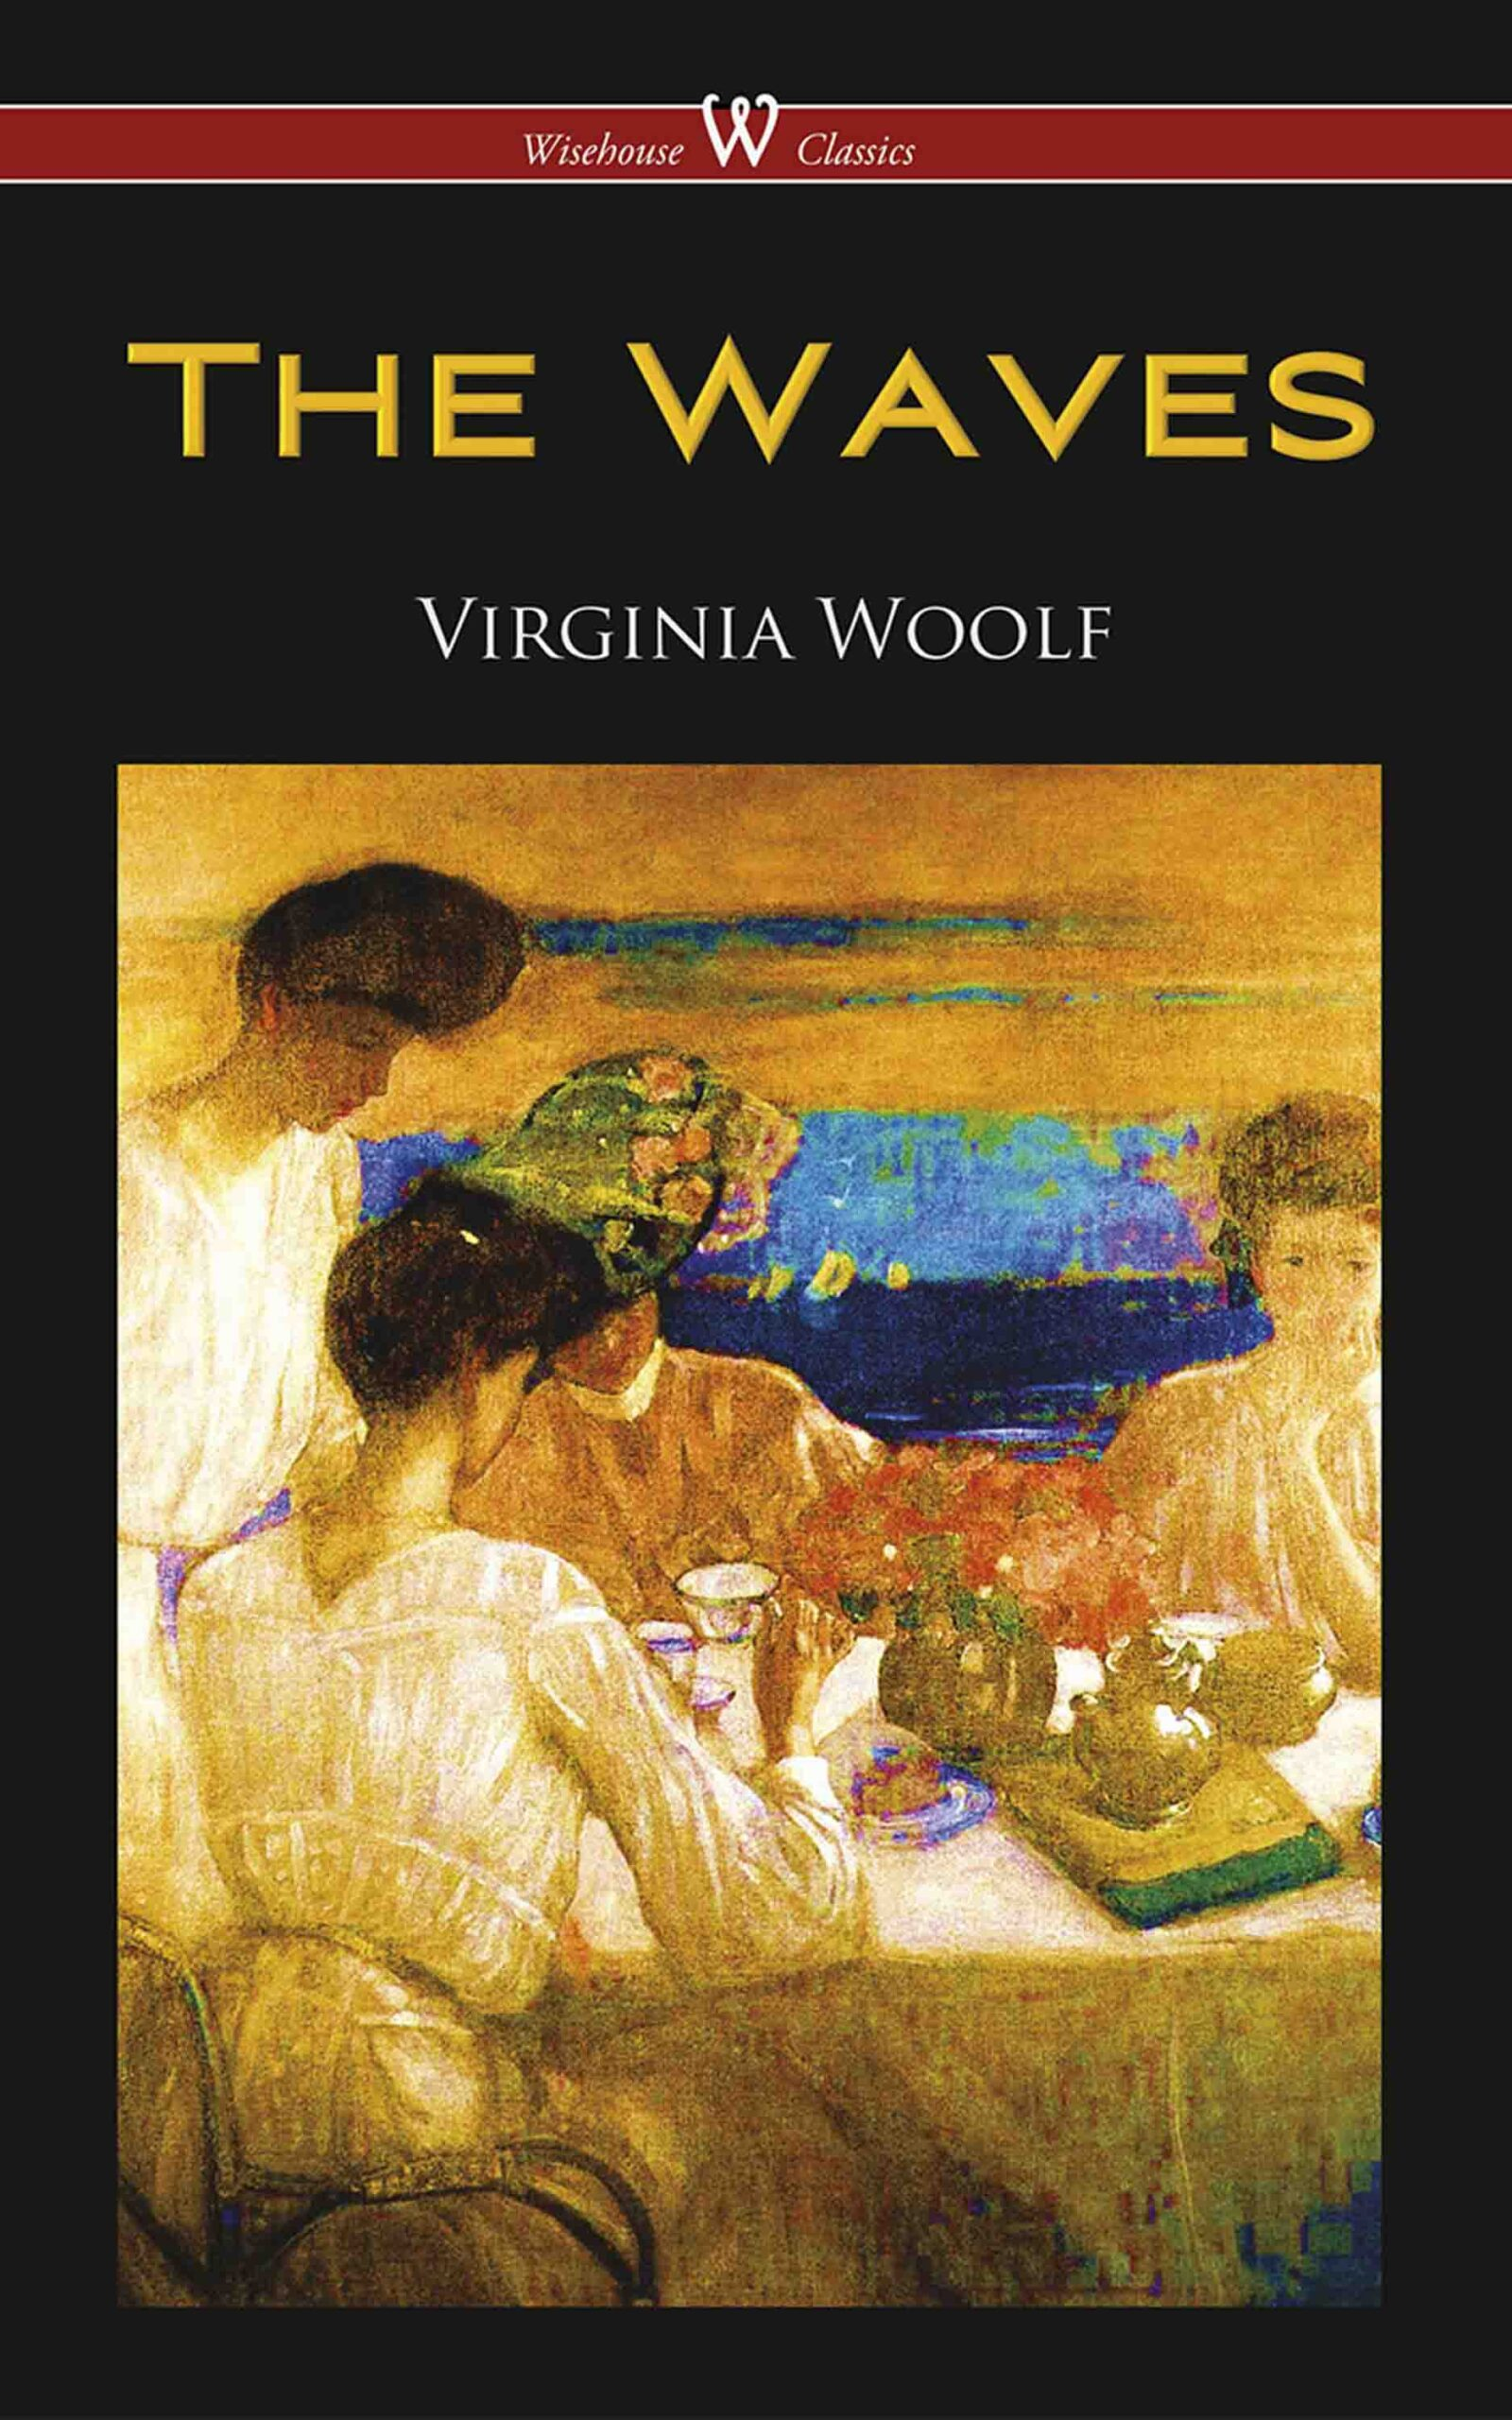 The Waves (Wisehouse Classics Edition)